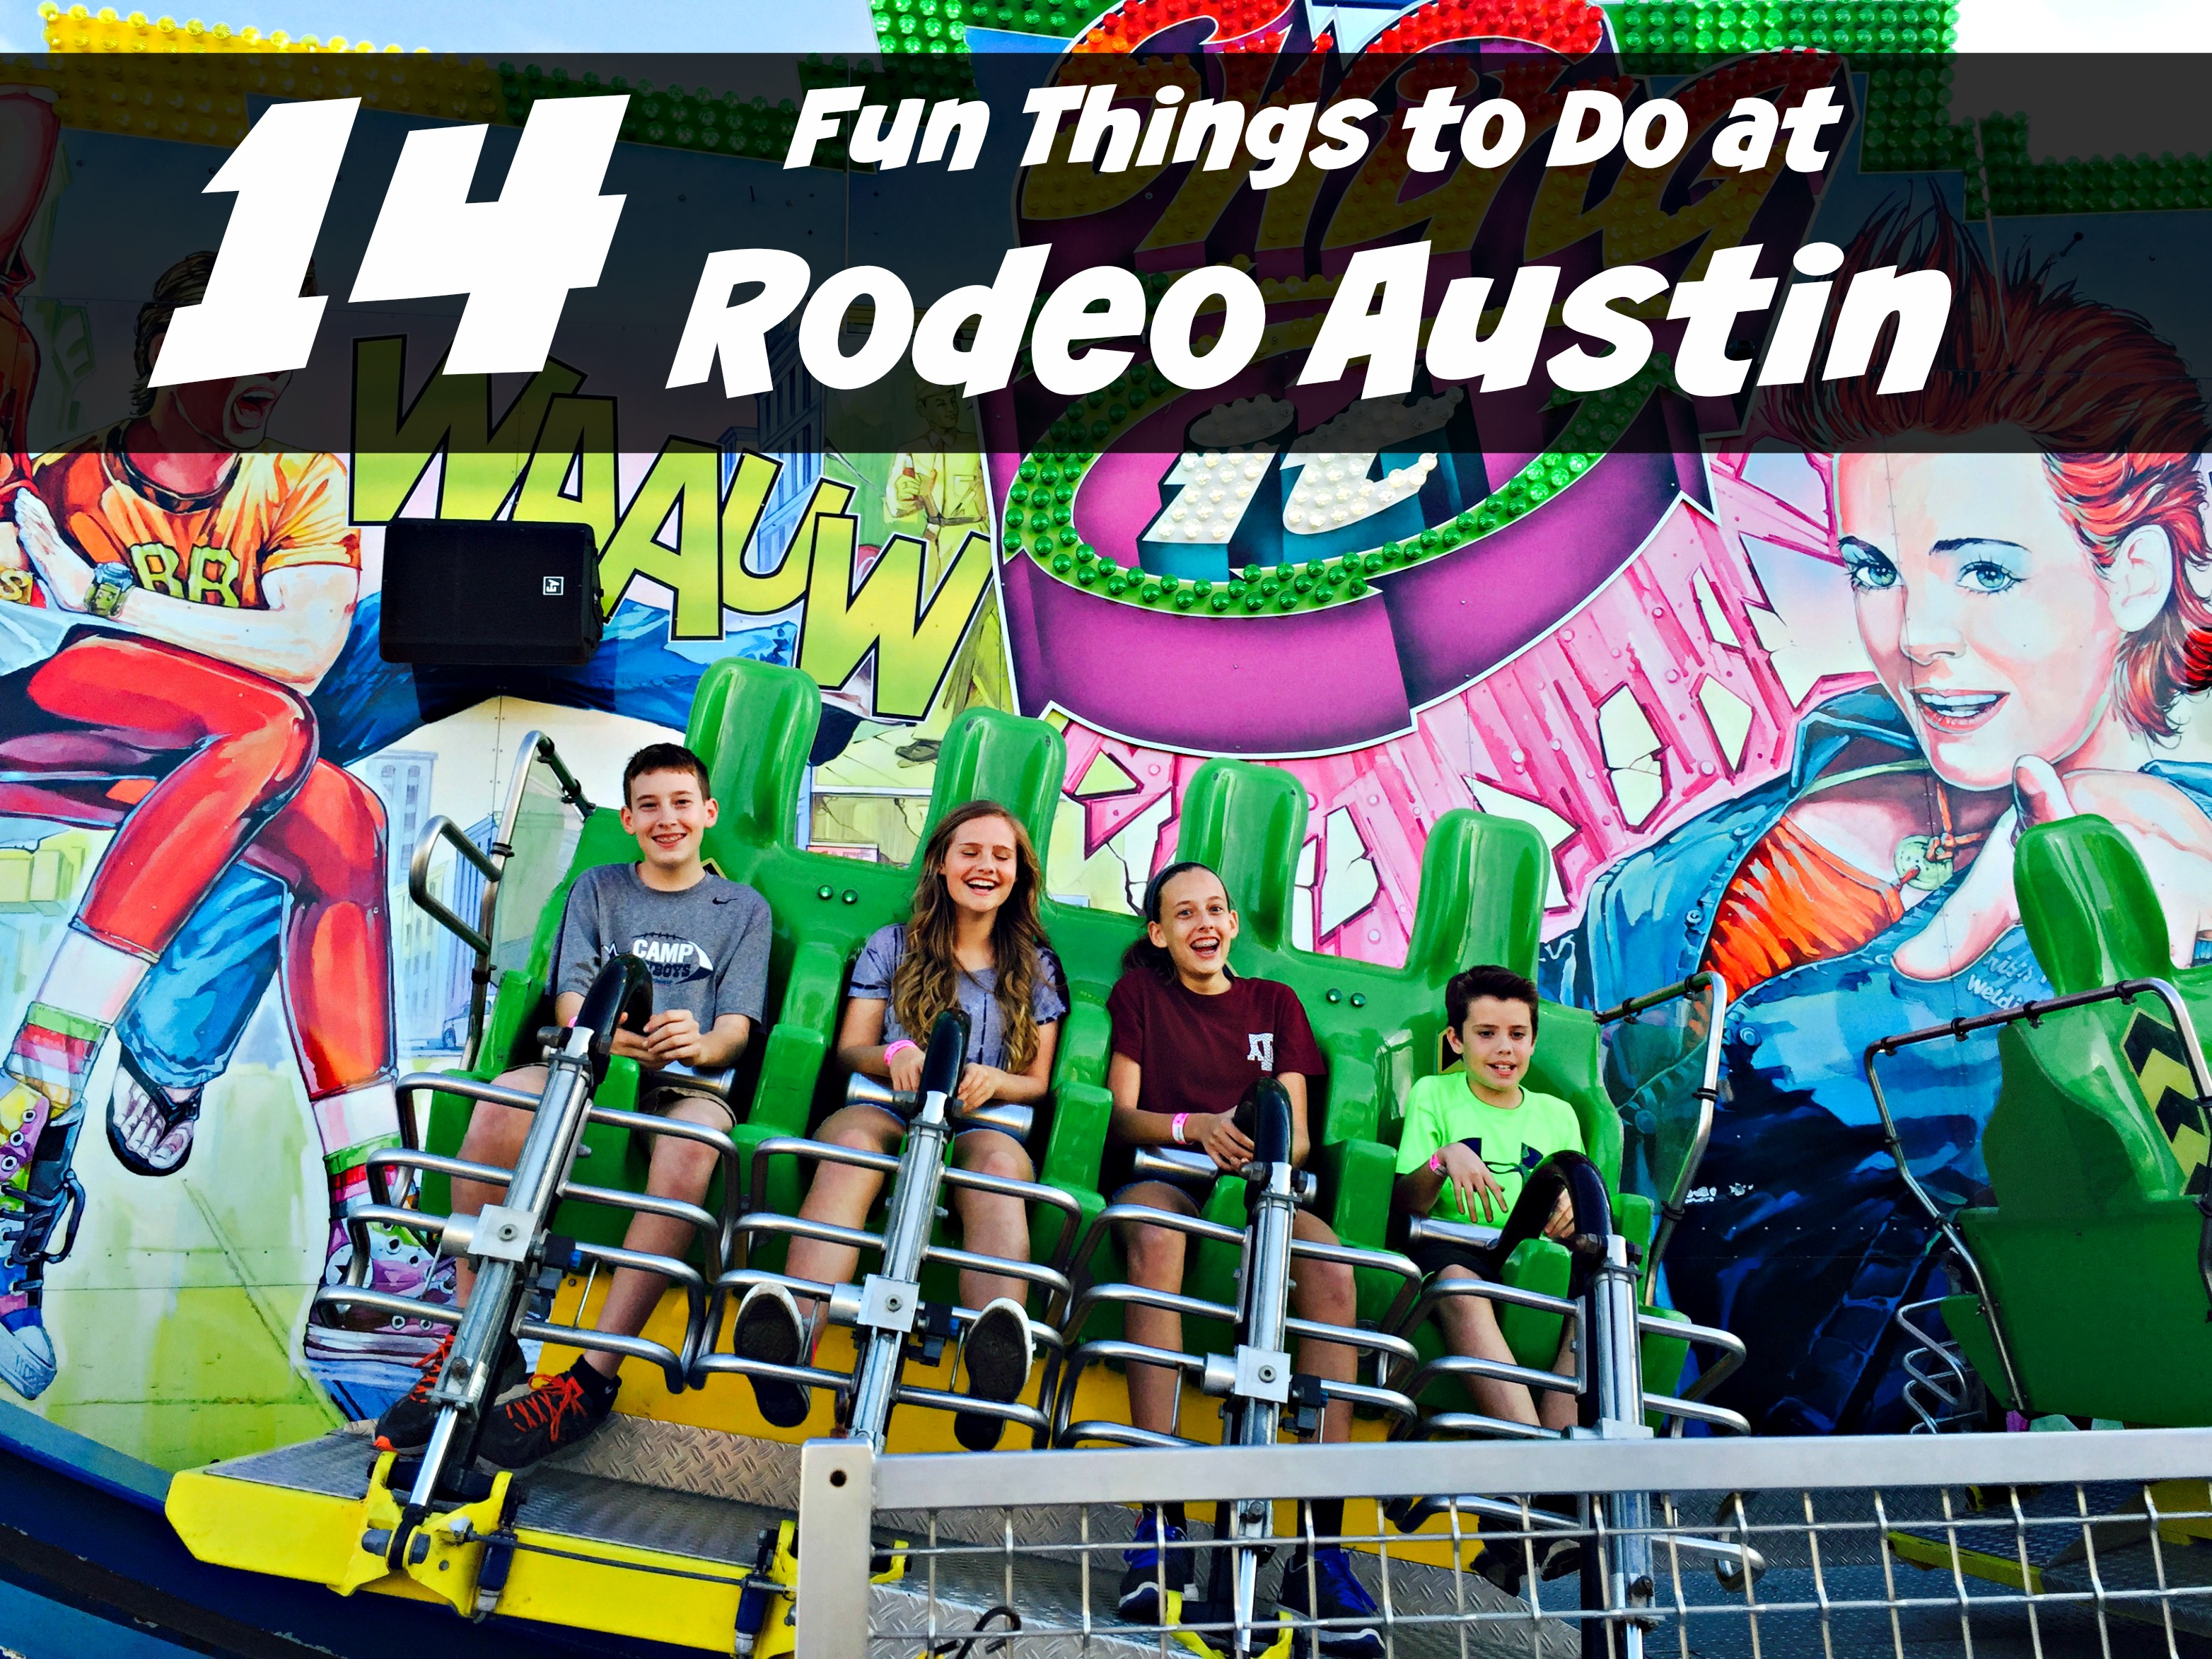 Fun Things Rodeo Austin